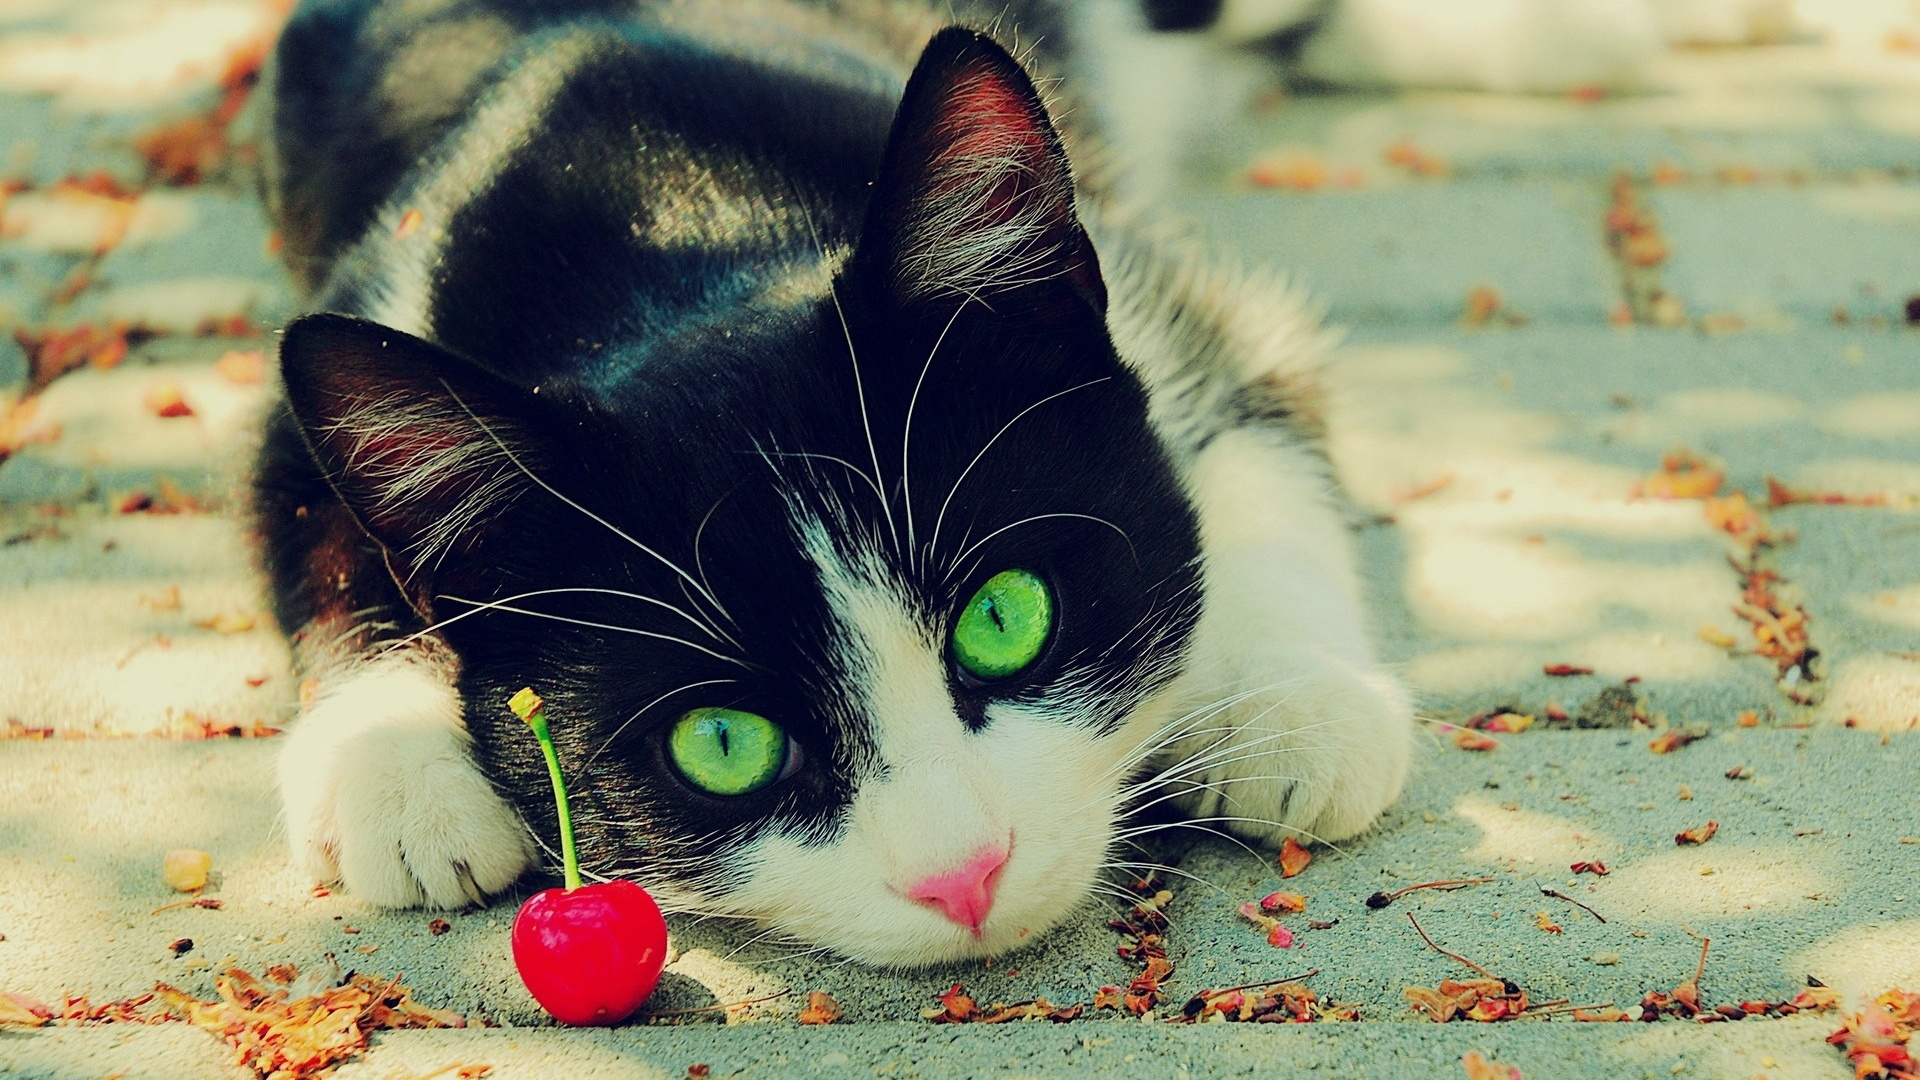 Black And White Cat With Green Eyes Picture HD Wallpaper